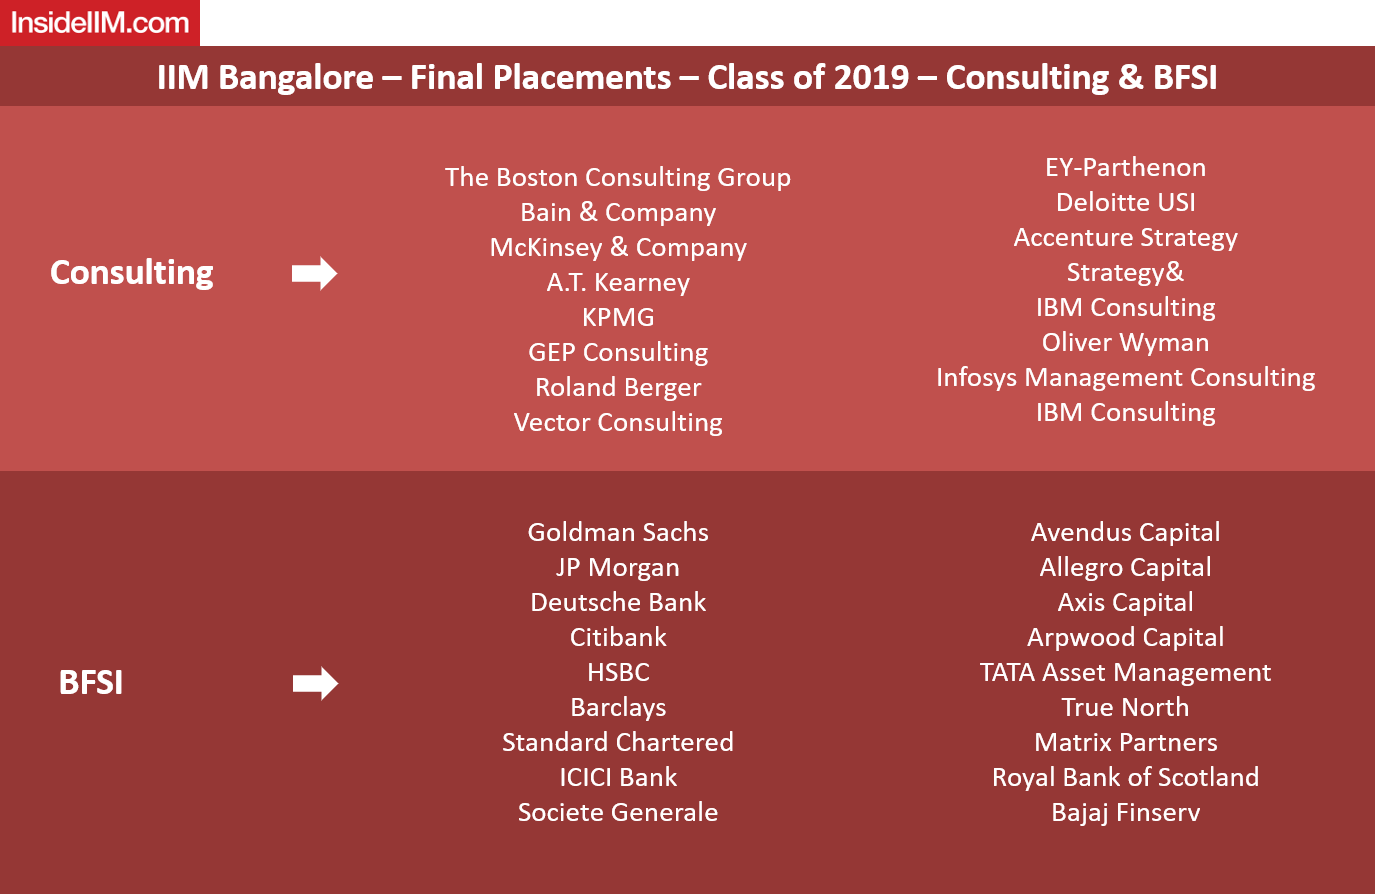 IIM Bangalore Final Placements 2019 - Consulting & BFSI